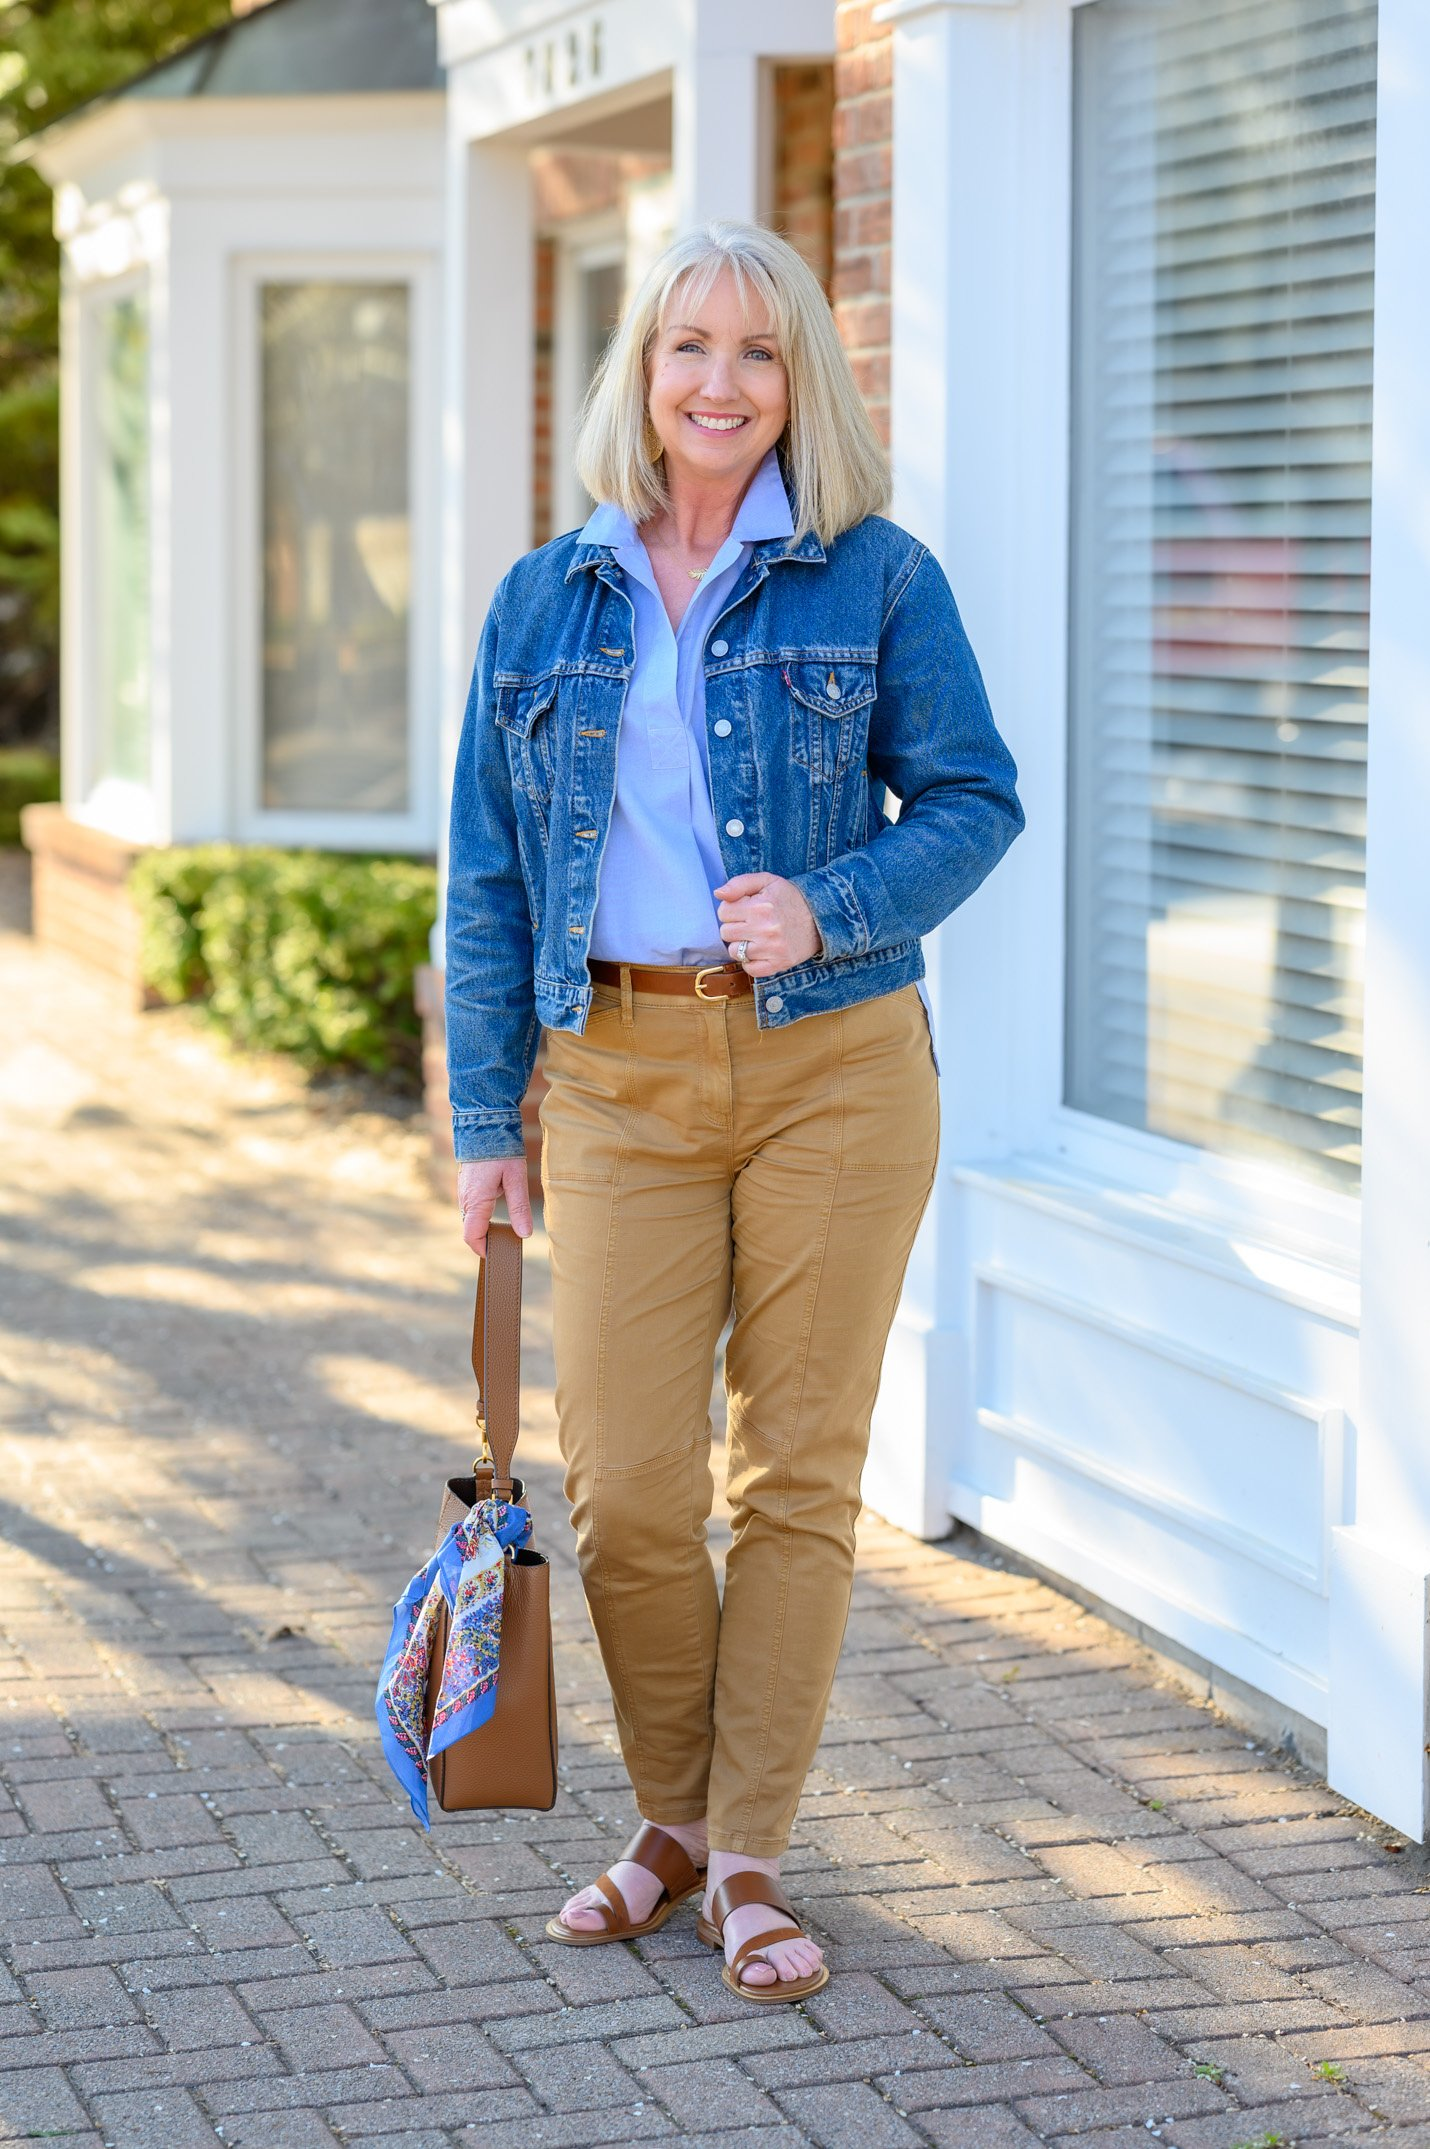 Styling Camel and Blue for Spring